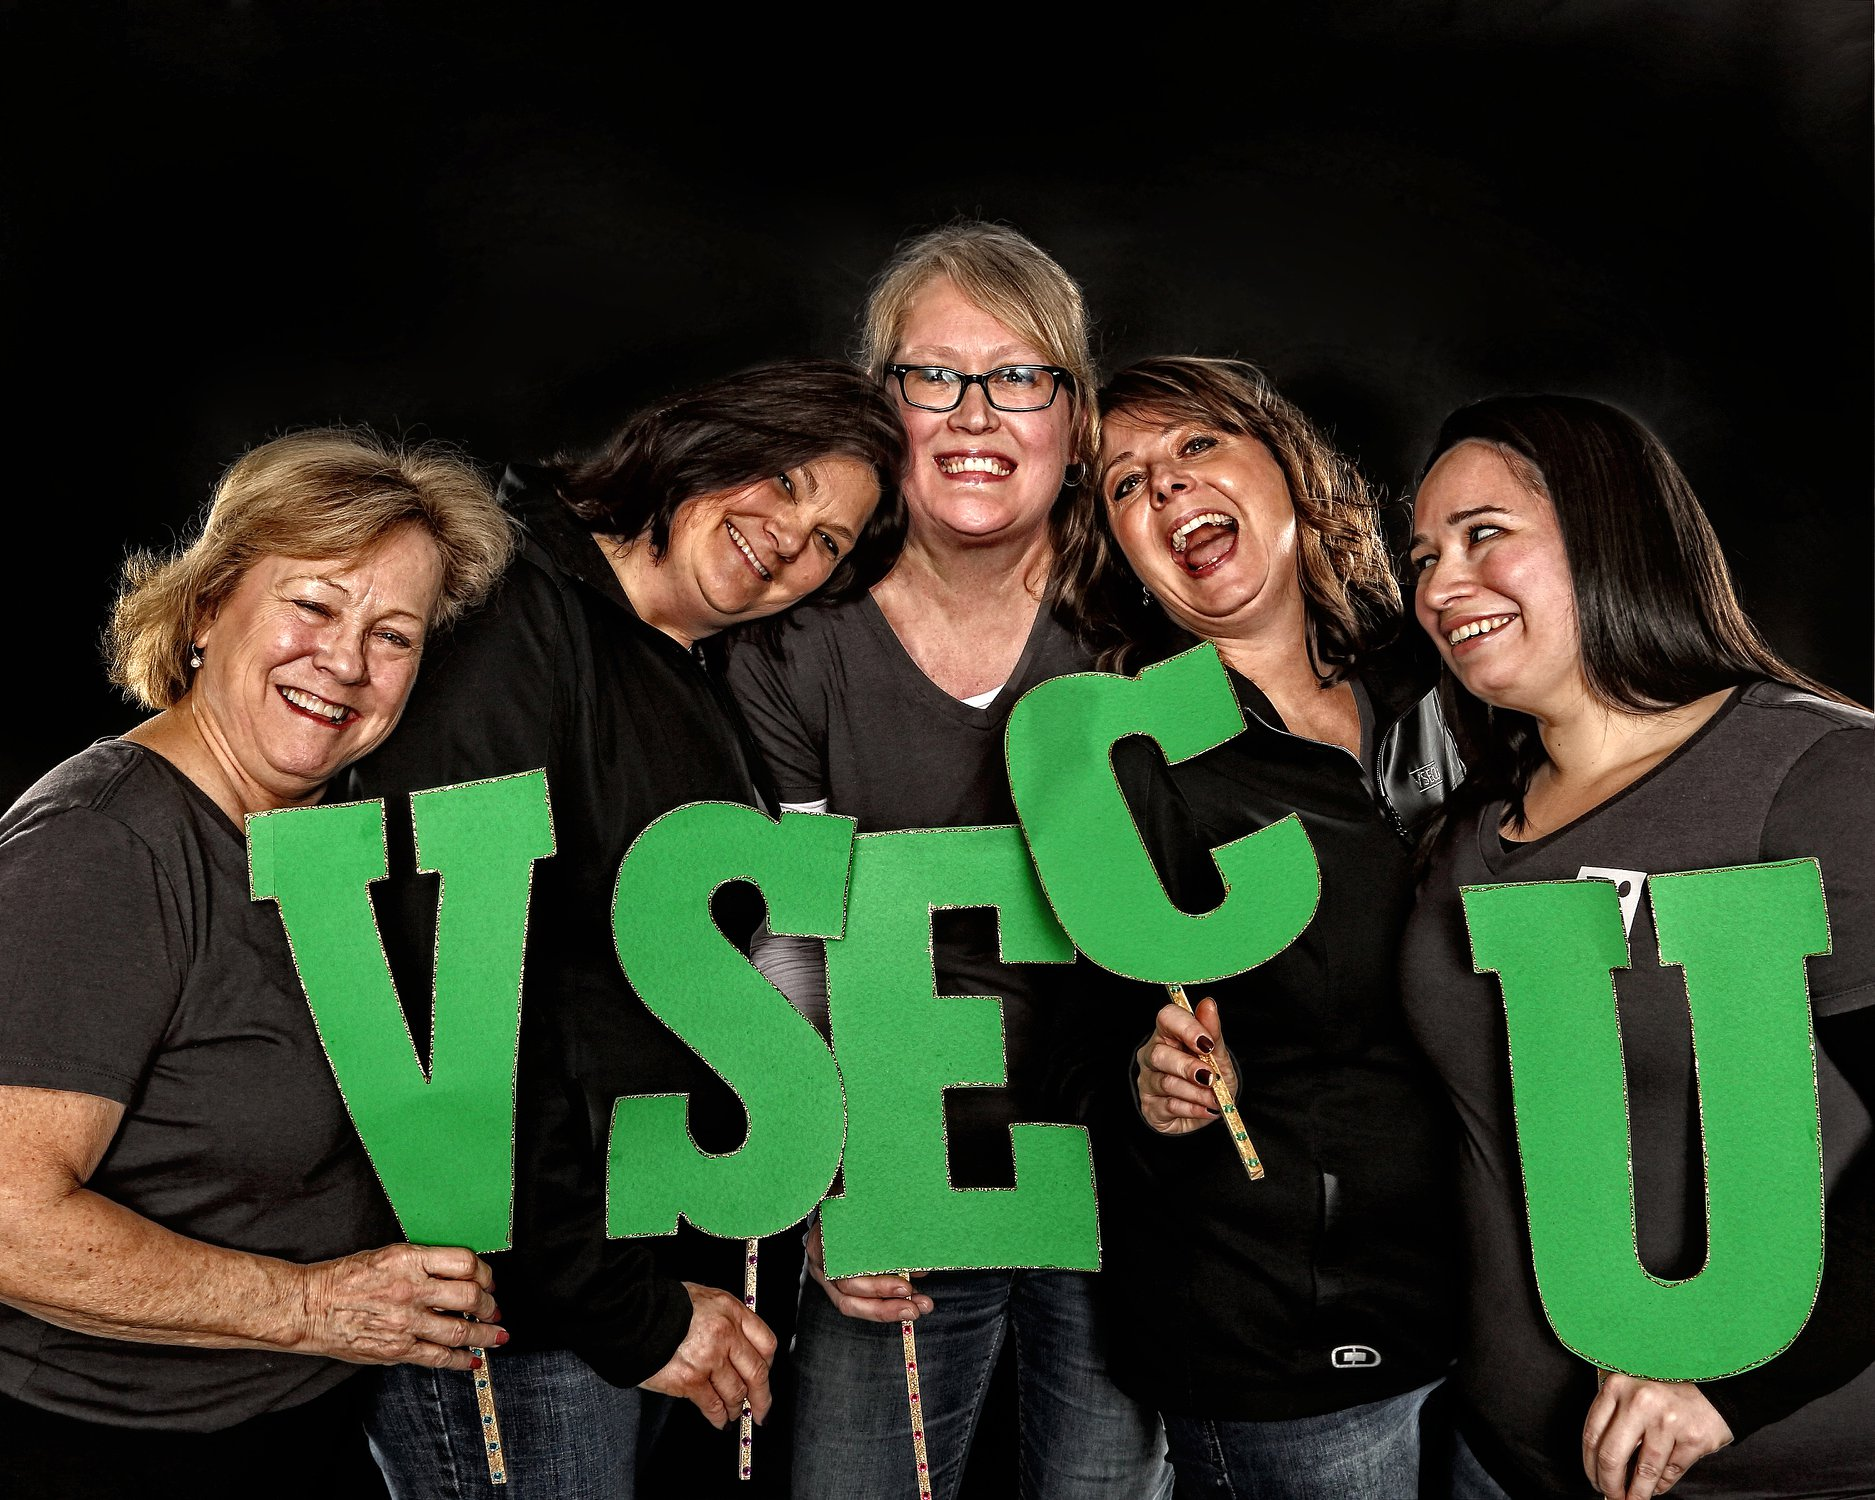 4 happy VSECU staff members